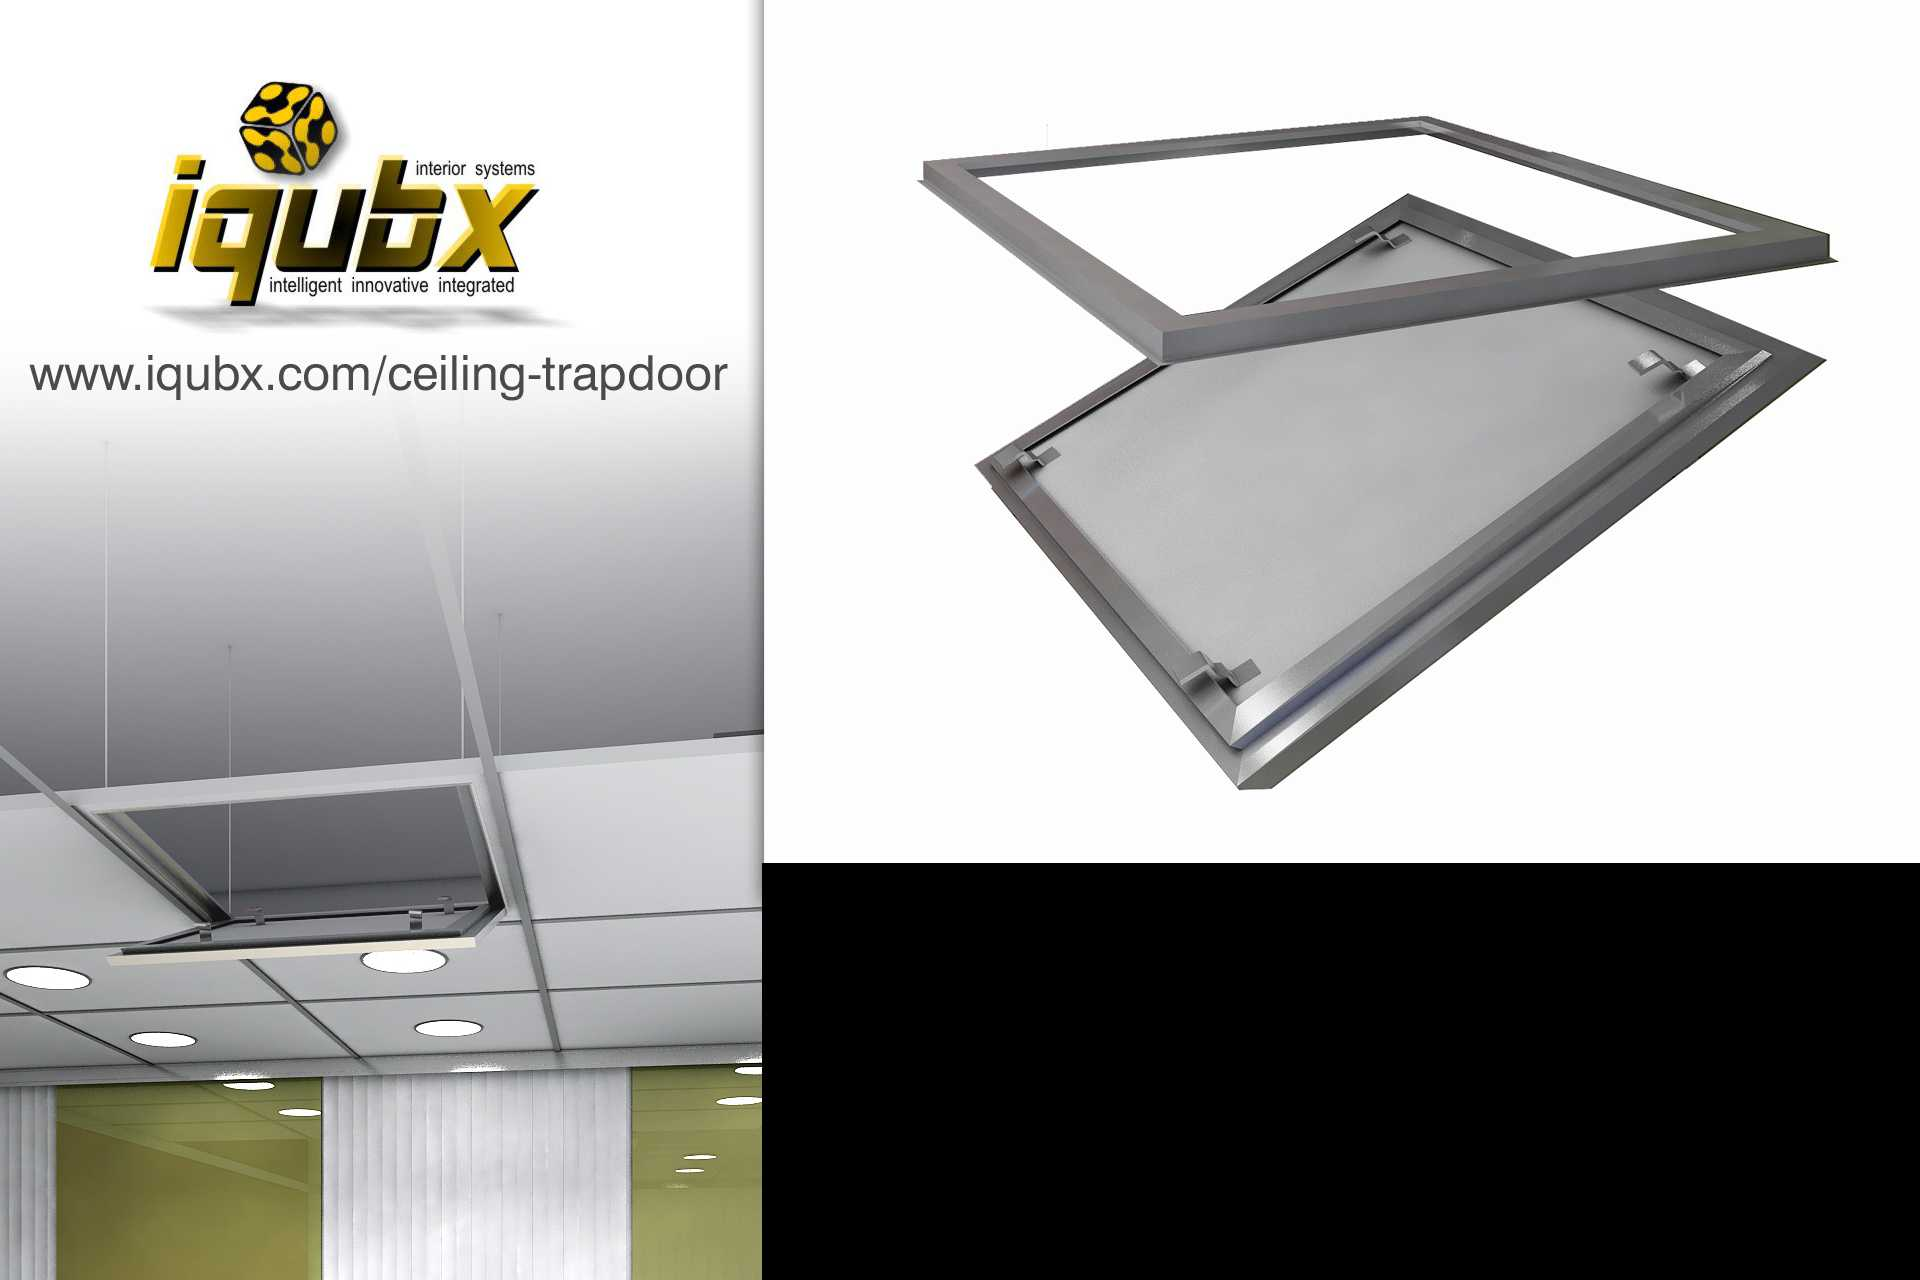 IQUBX access hatch ceiling trapdoor is simple and elegant solution